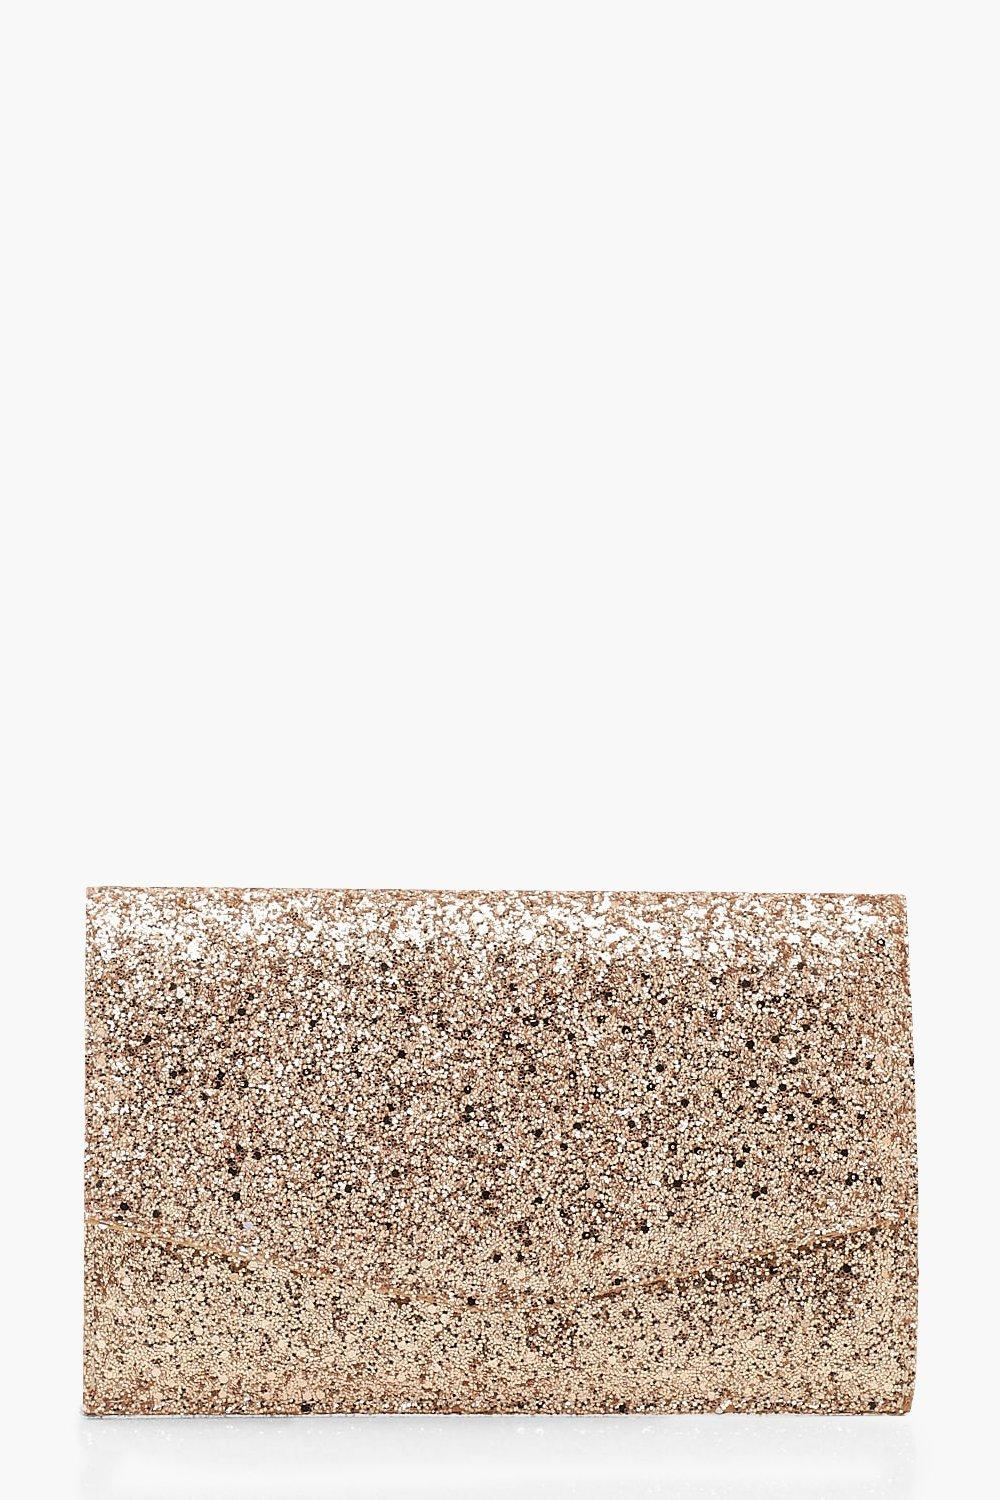 boohoo Womens Chunky Glitter Envelope Clutch Bag & Chain - Pink - One Size, Pink